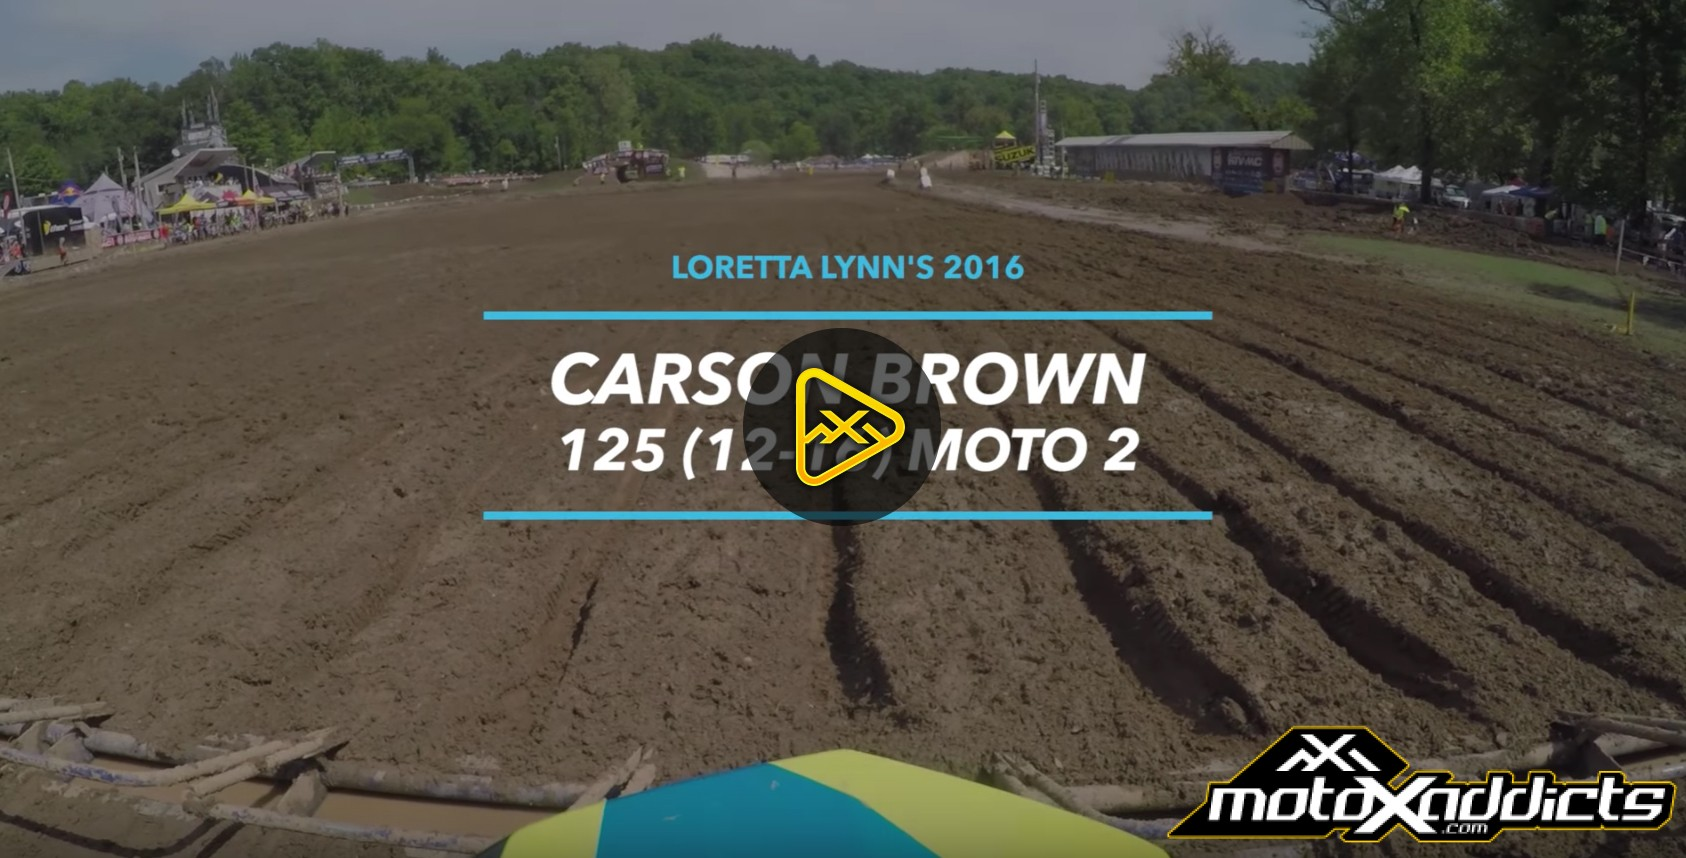 Helmet Cam: Carson Brown – 125 (12-16) at Loretta Lynn's